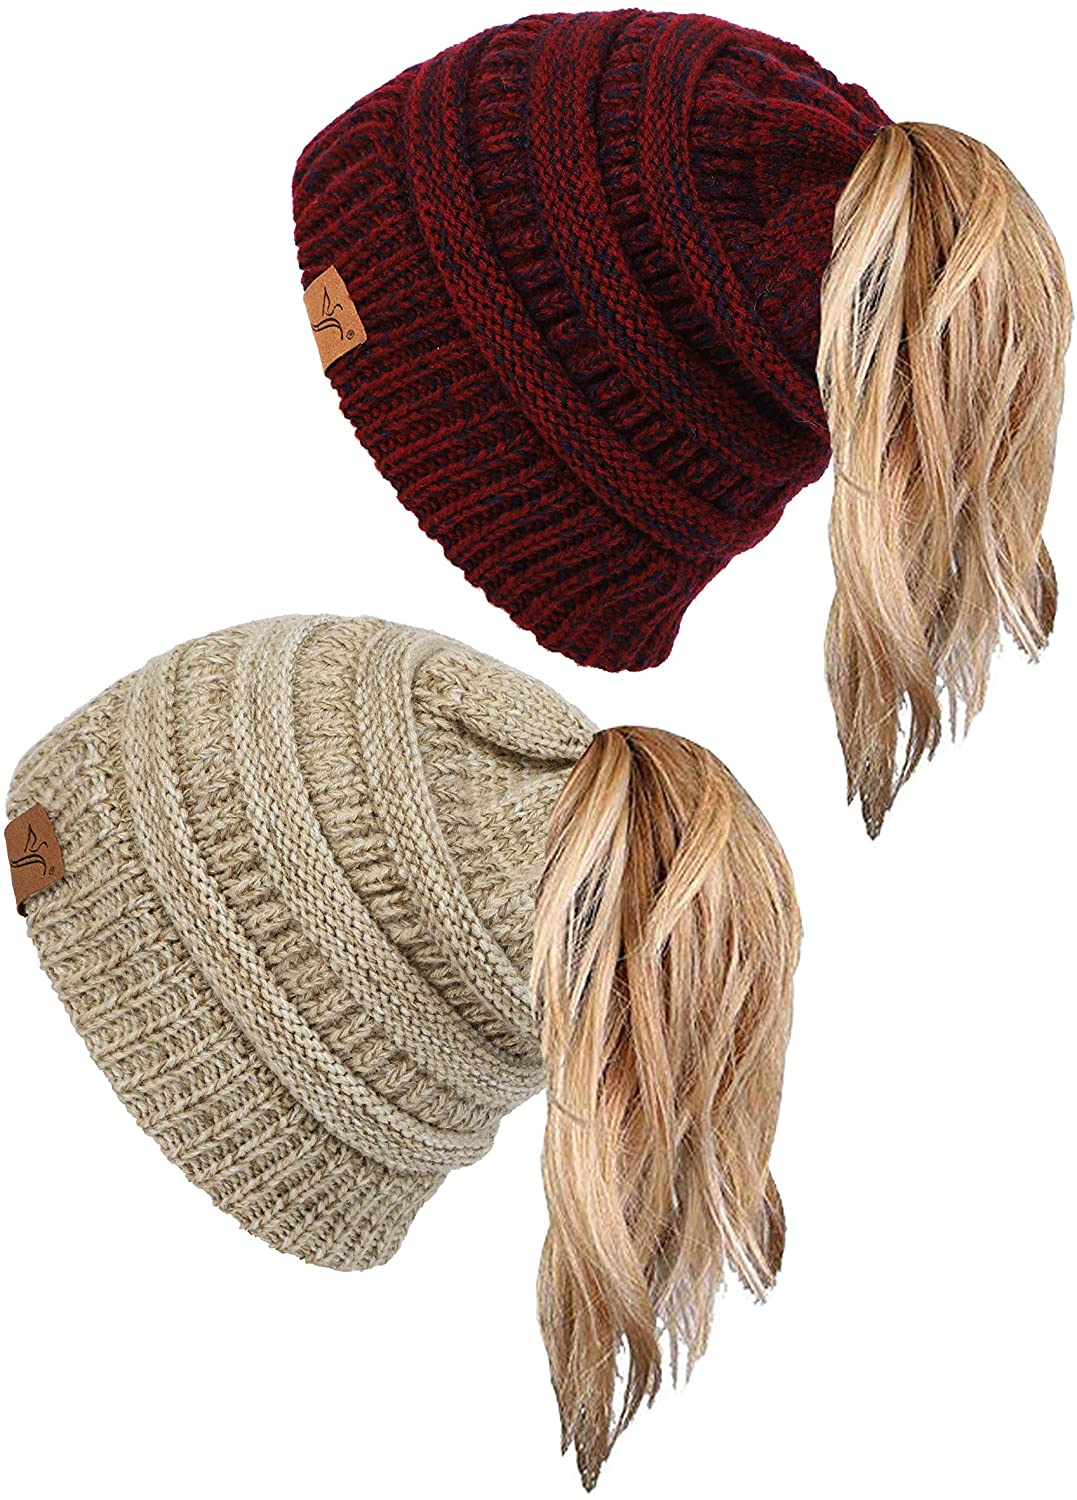 Soul Young Ponytail Messy Bun Beanie Tail Knit Hole Soft Stretch Cable Winter Hat for Women